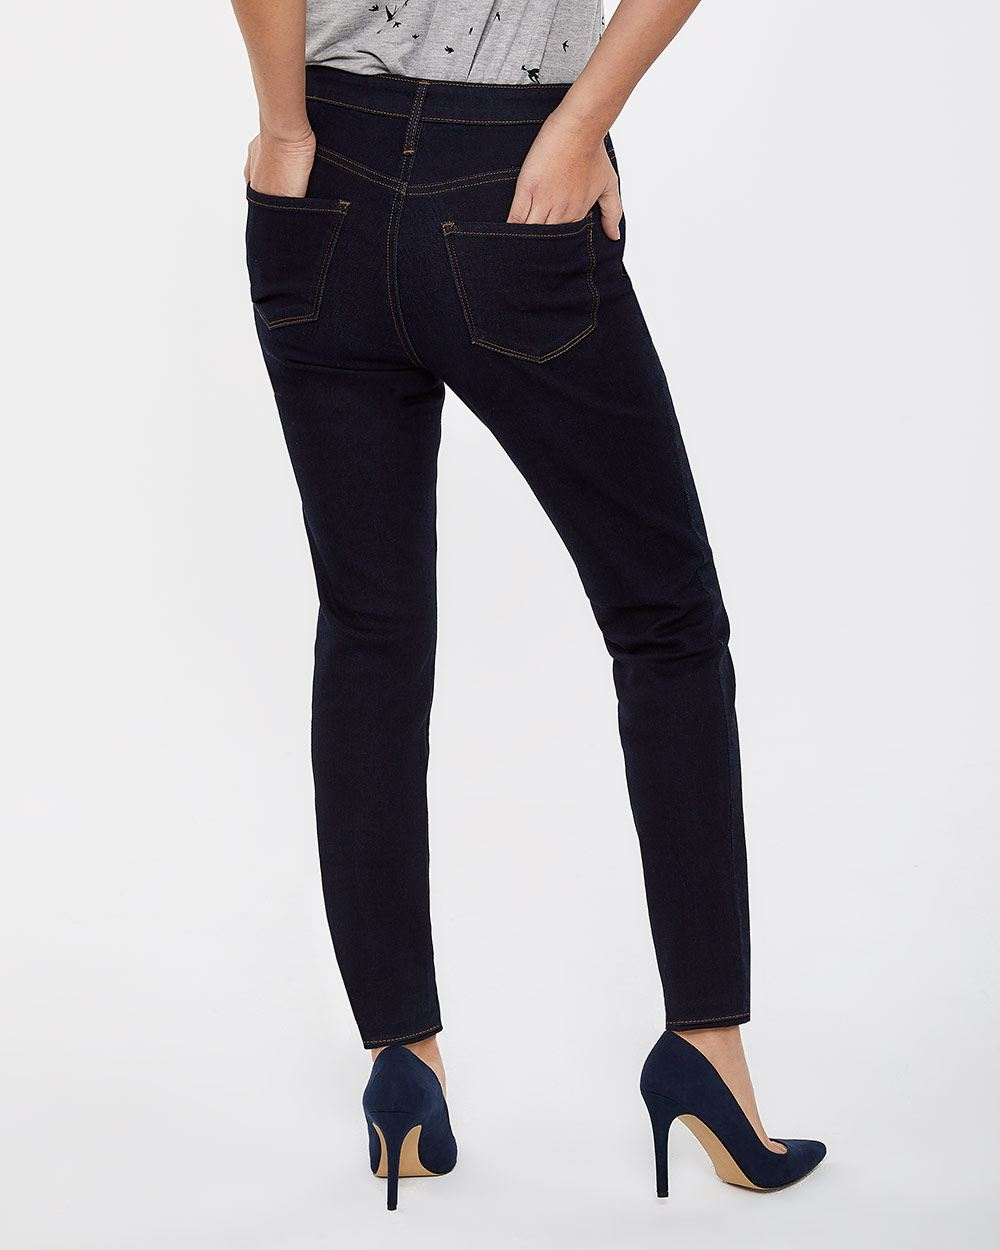 Petite High Rise Dark Wash Skinny Jeans